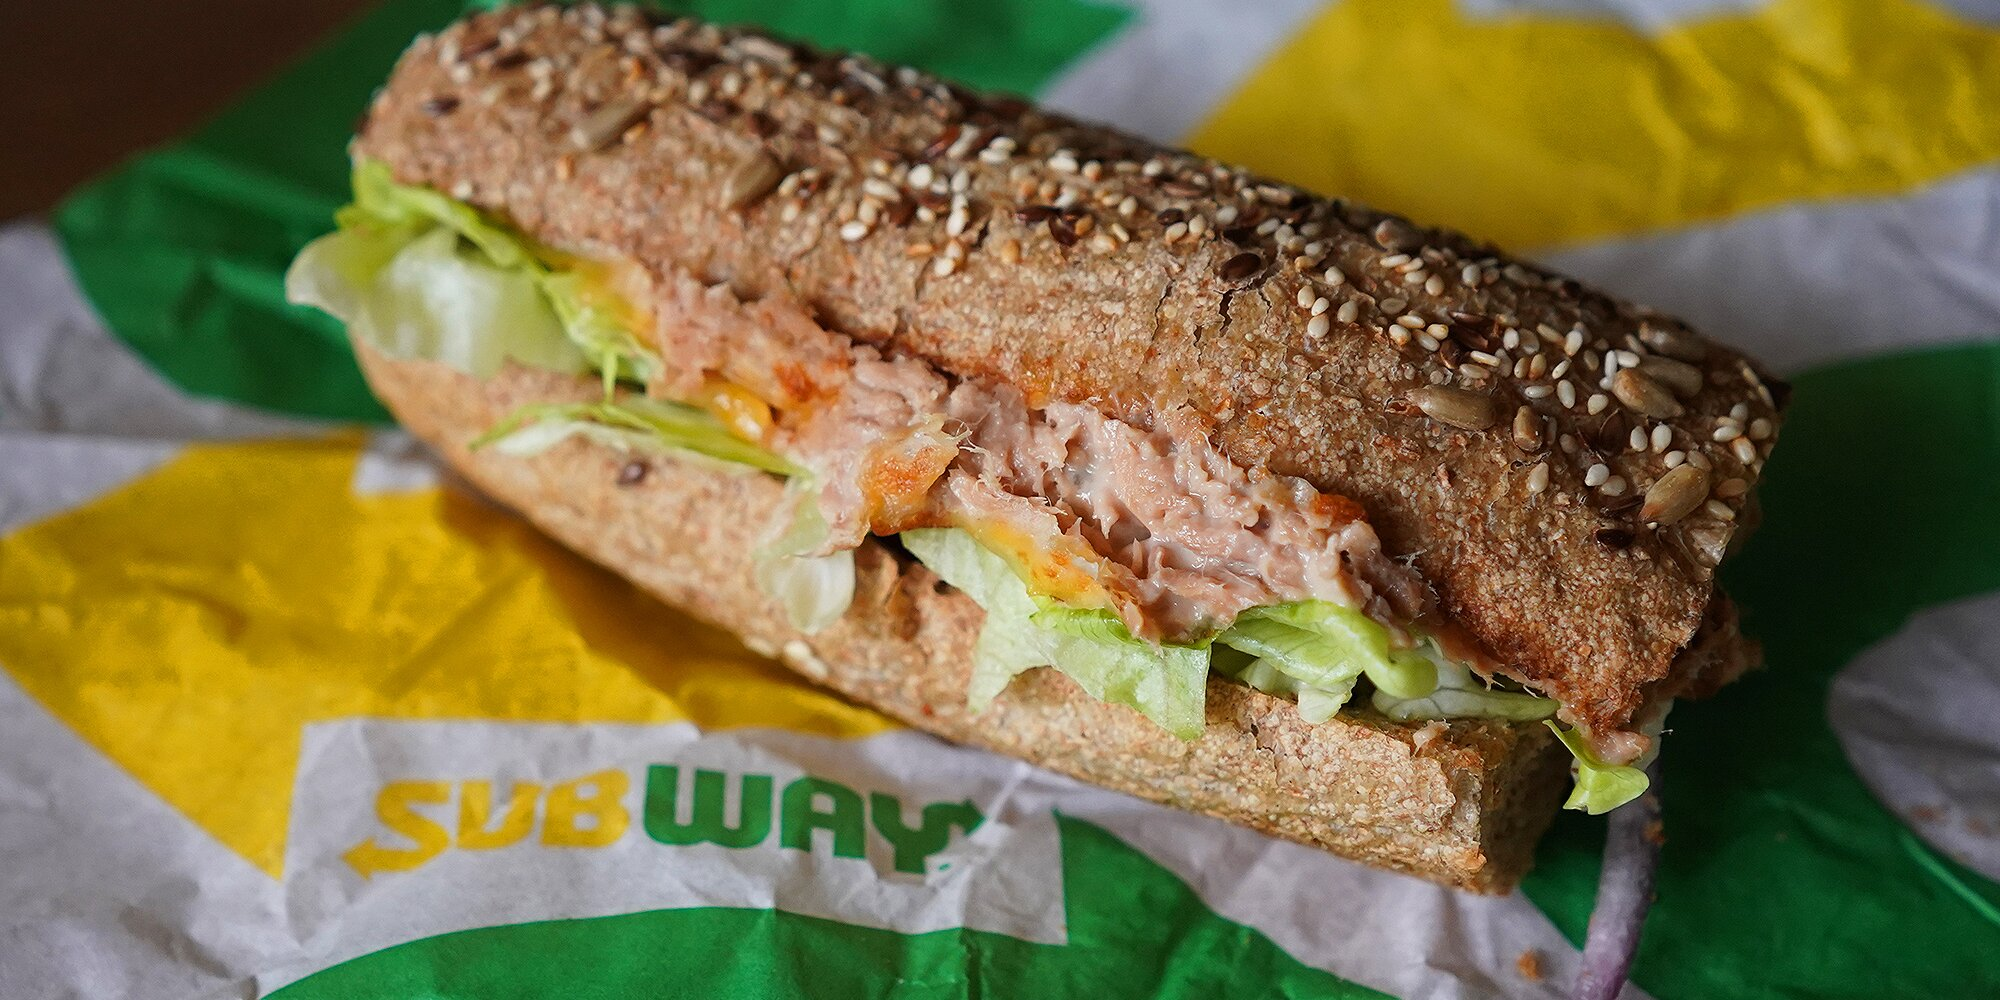 Lab Study Determines There's 'No Amplifiable Tuna DNA' in Subway Tuna Sandwiches amid Lawsuit Against Chain